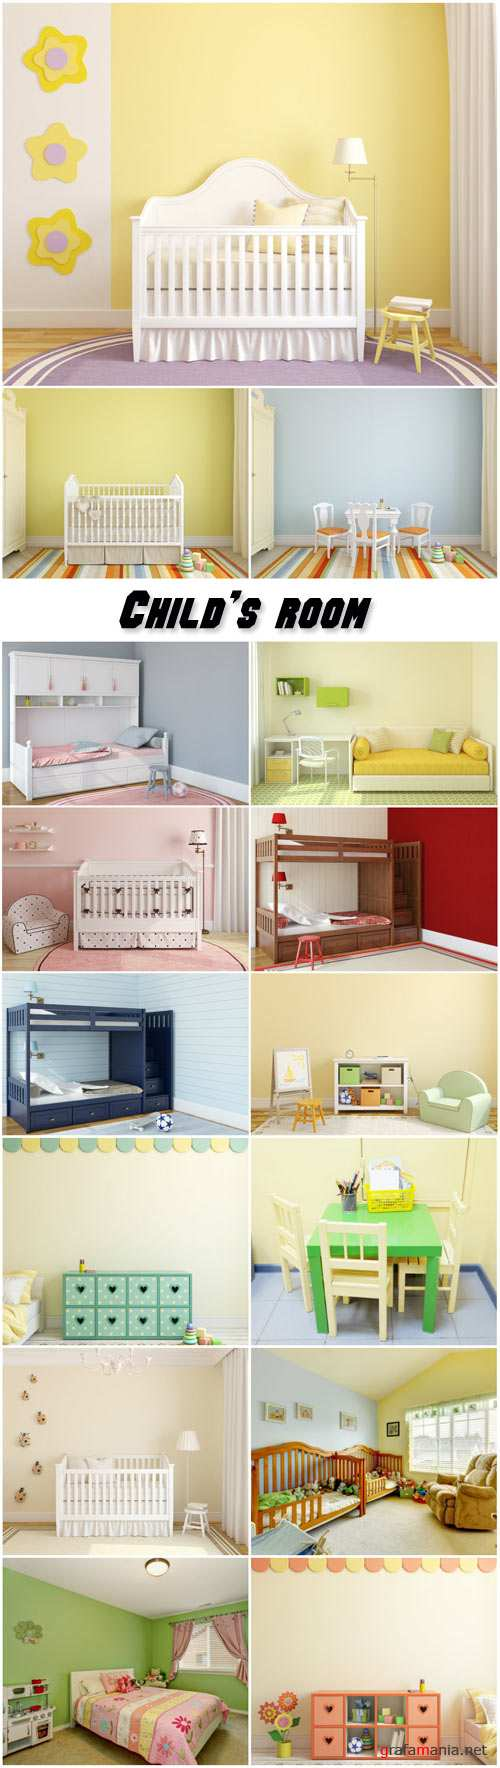 Child's room, bed and a table